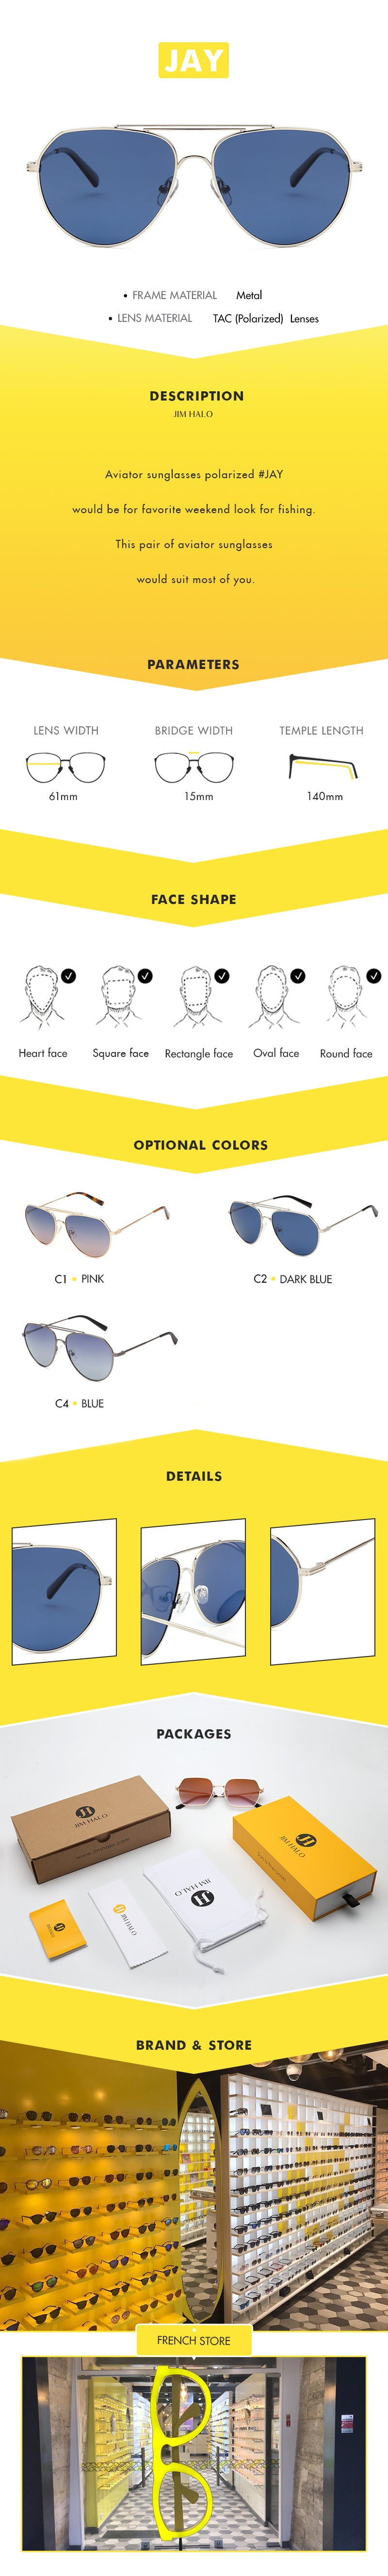 Aviator sunglasses polarized #JAY would be for favorite weekend look for fishing This pair of aviator sunglasses would suit most of you.